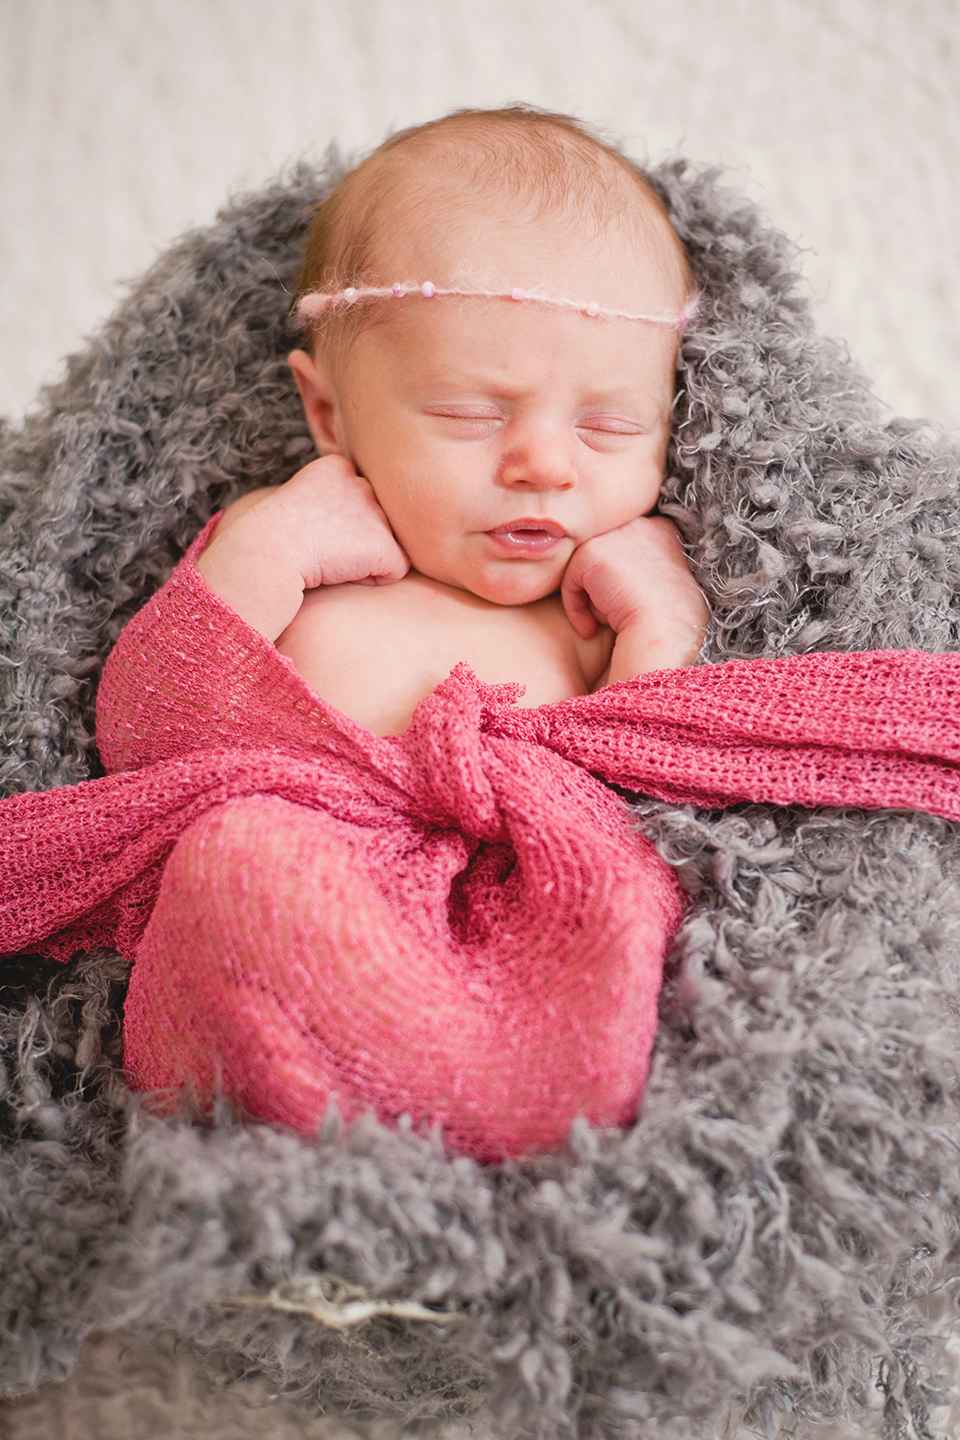 Baby girl with beaded headband in gray and pink